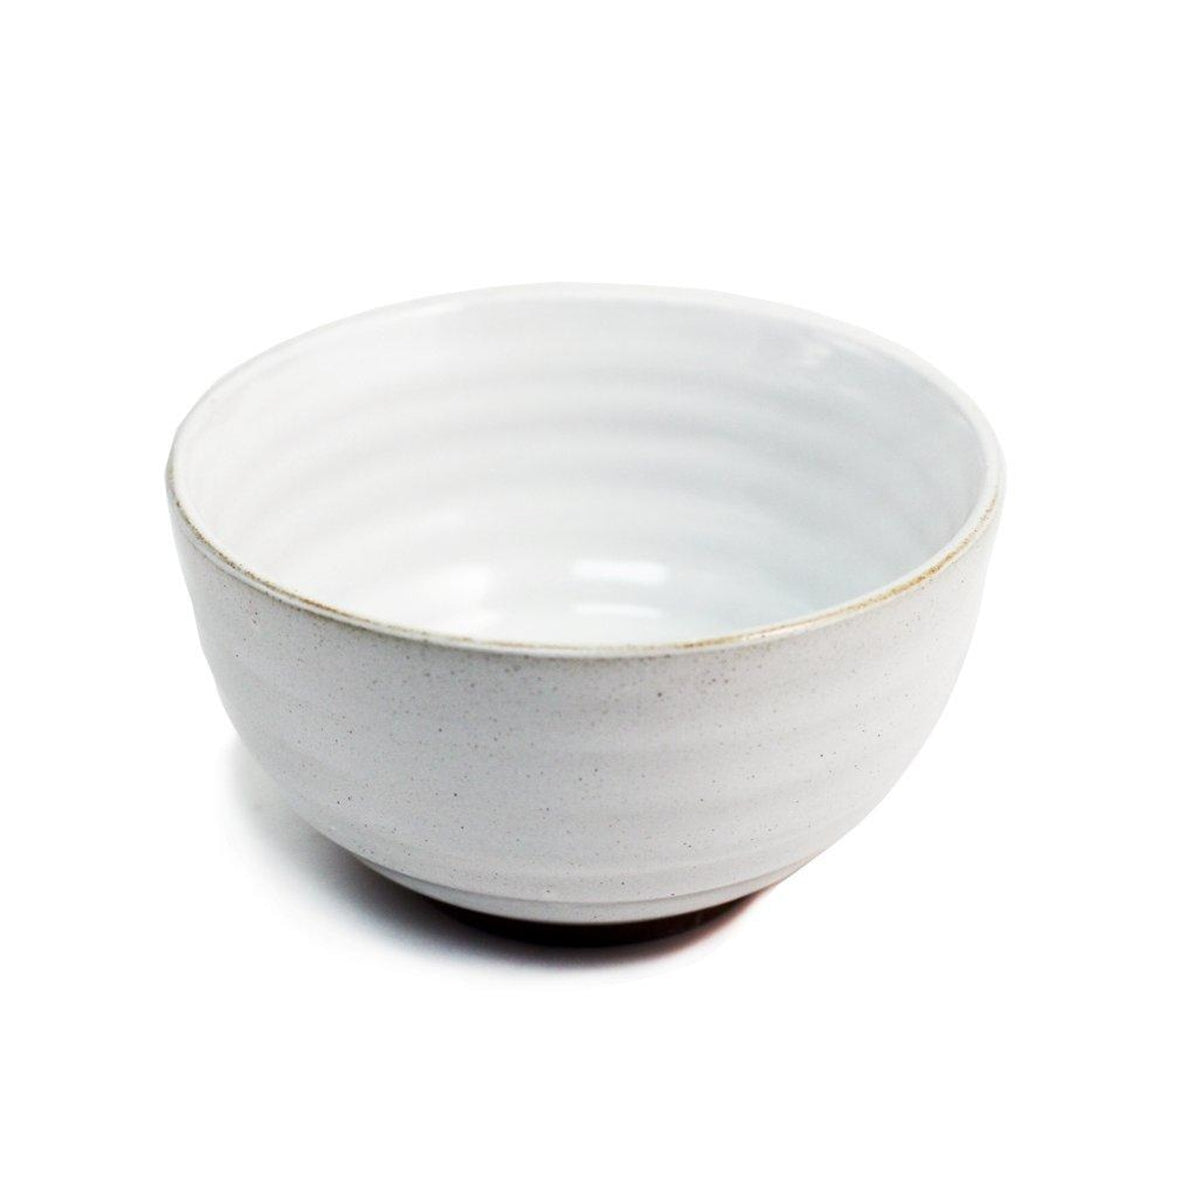 "Ridged White Noodle Bowl 28 fl oz / 5.9"" dia"